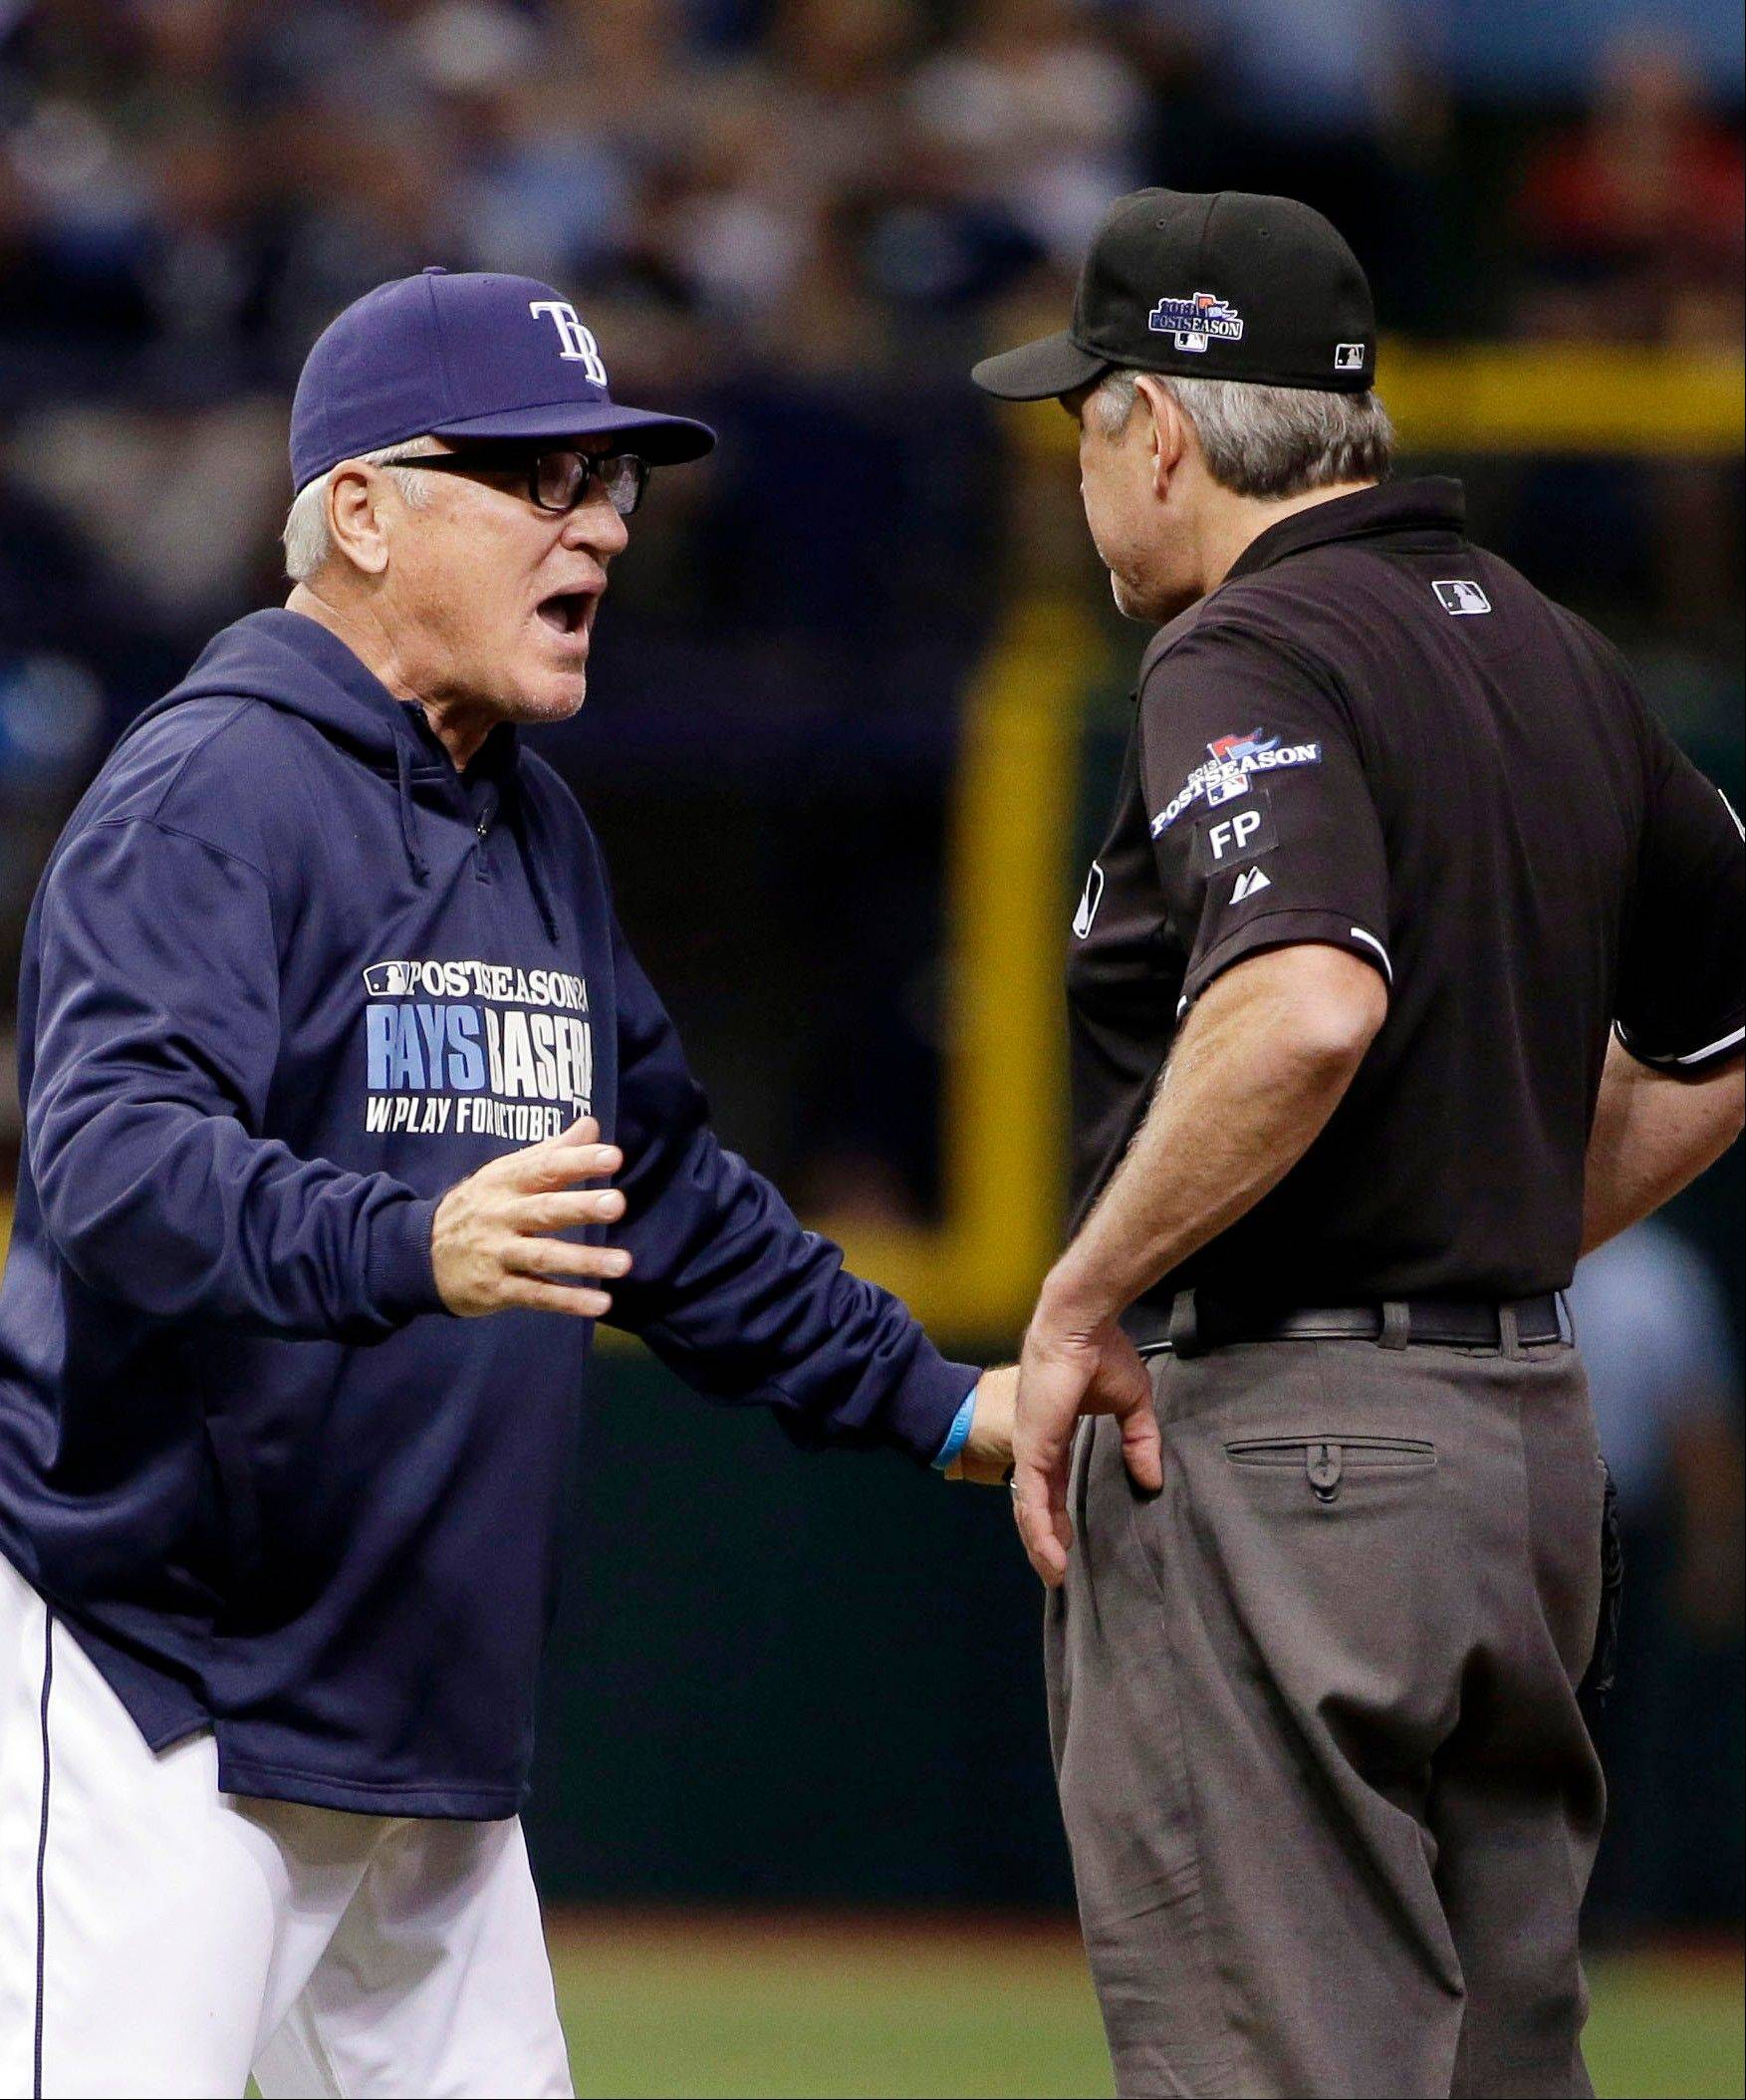 Tampa Bay Rays manager Joe Maddon, left, argues a call with first base umpire Paul Emmel in the eighth inning Monday.